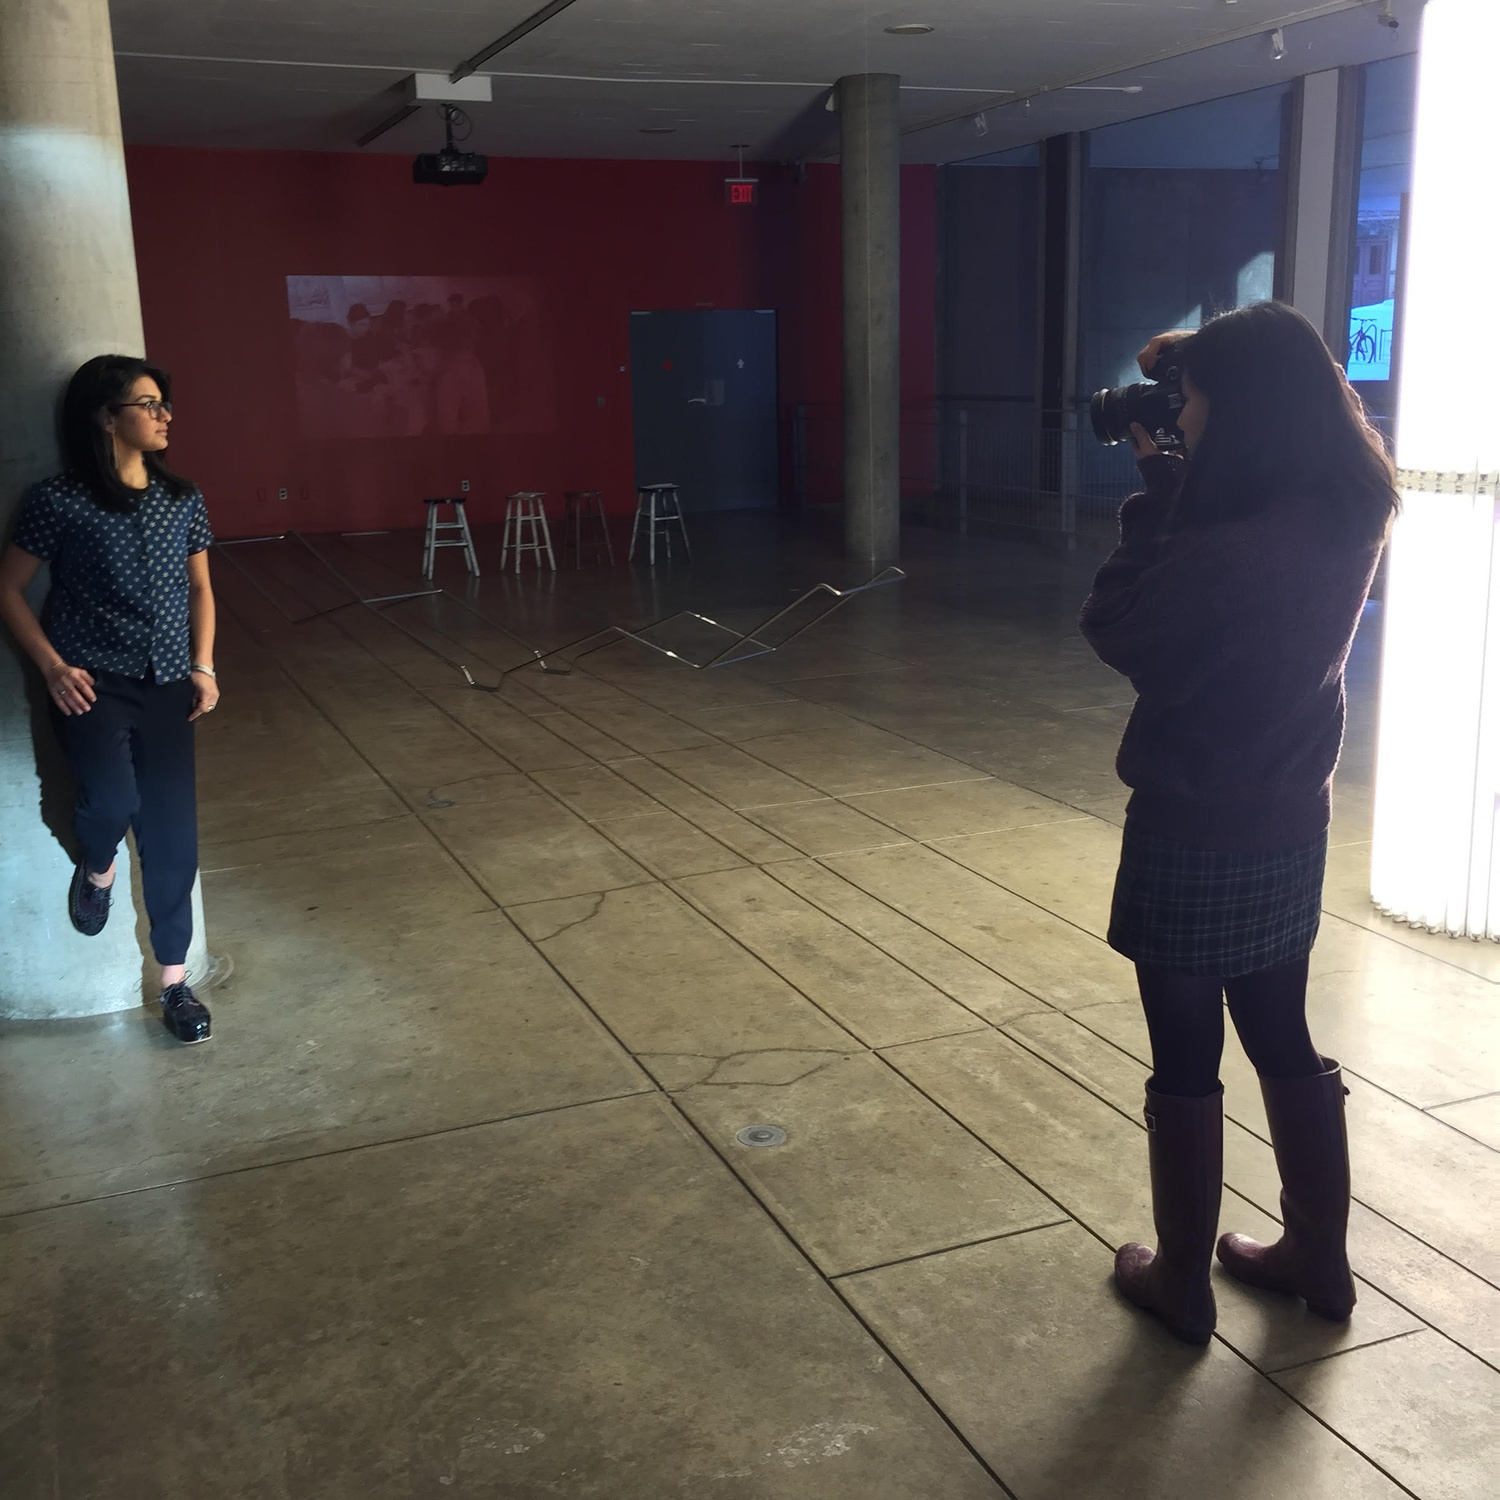 Katie L. Borrazzo '18, an active Crimson editor, does a Yard Style photoshoot for The Collegiate Club, a fashion and lifestyle blog recently founded by a group of freshmen in the college.